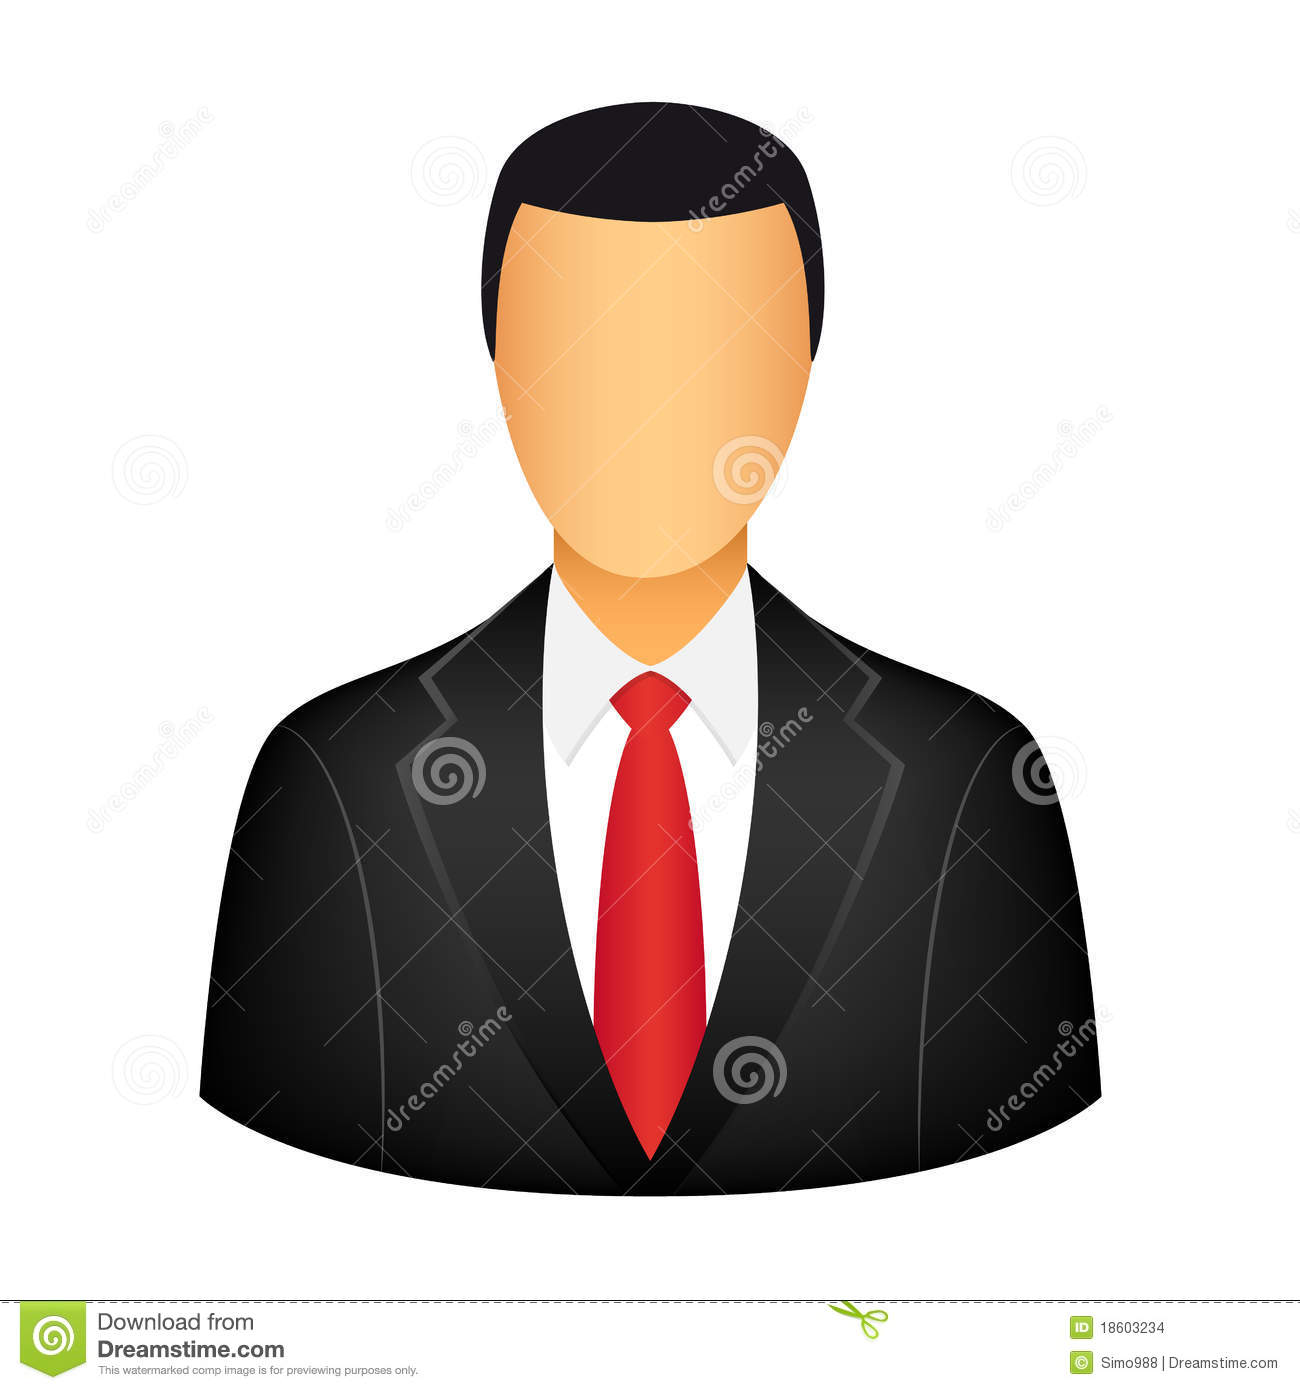 More similar stock images of ` Businessman icon `